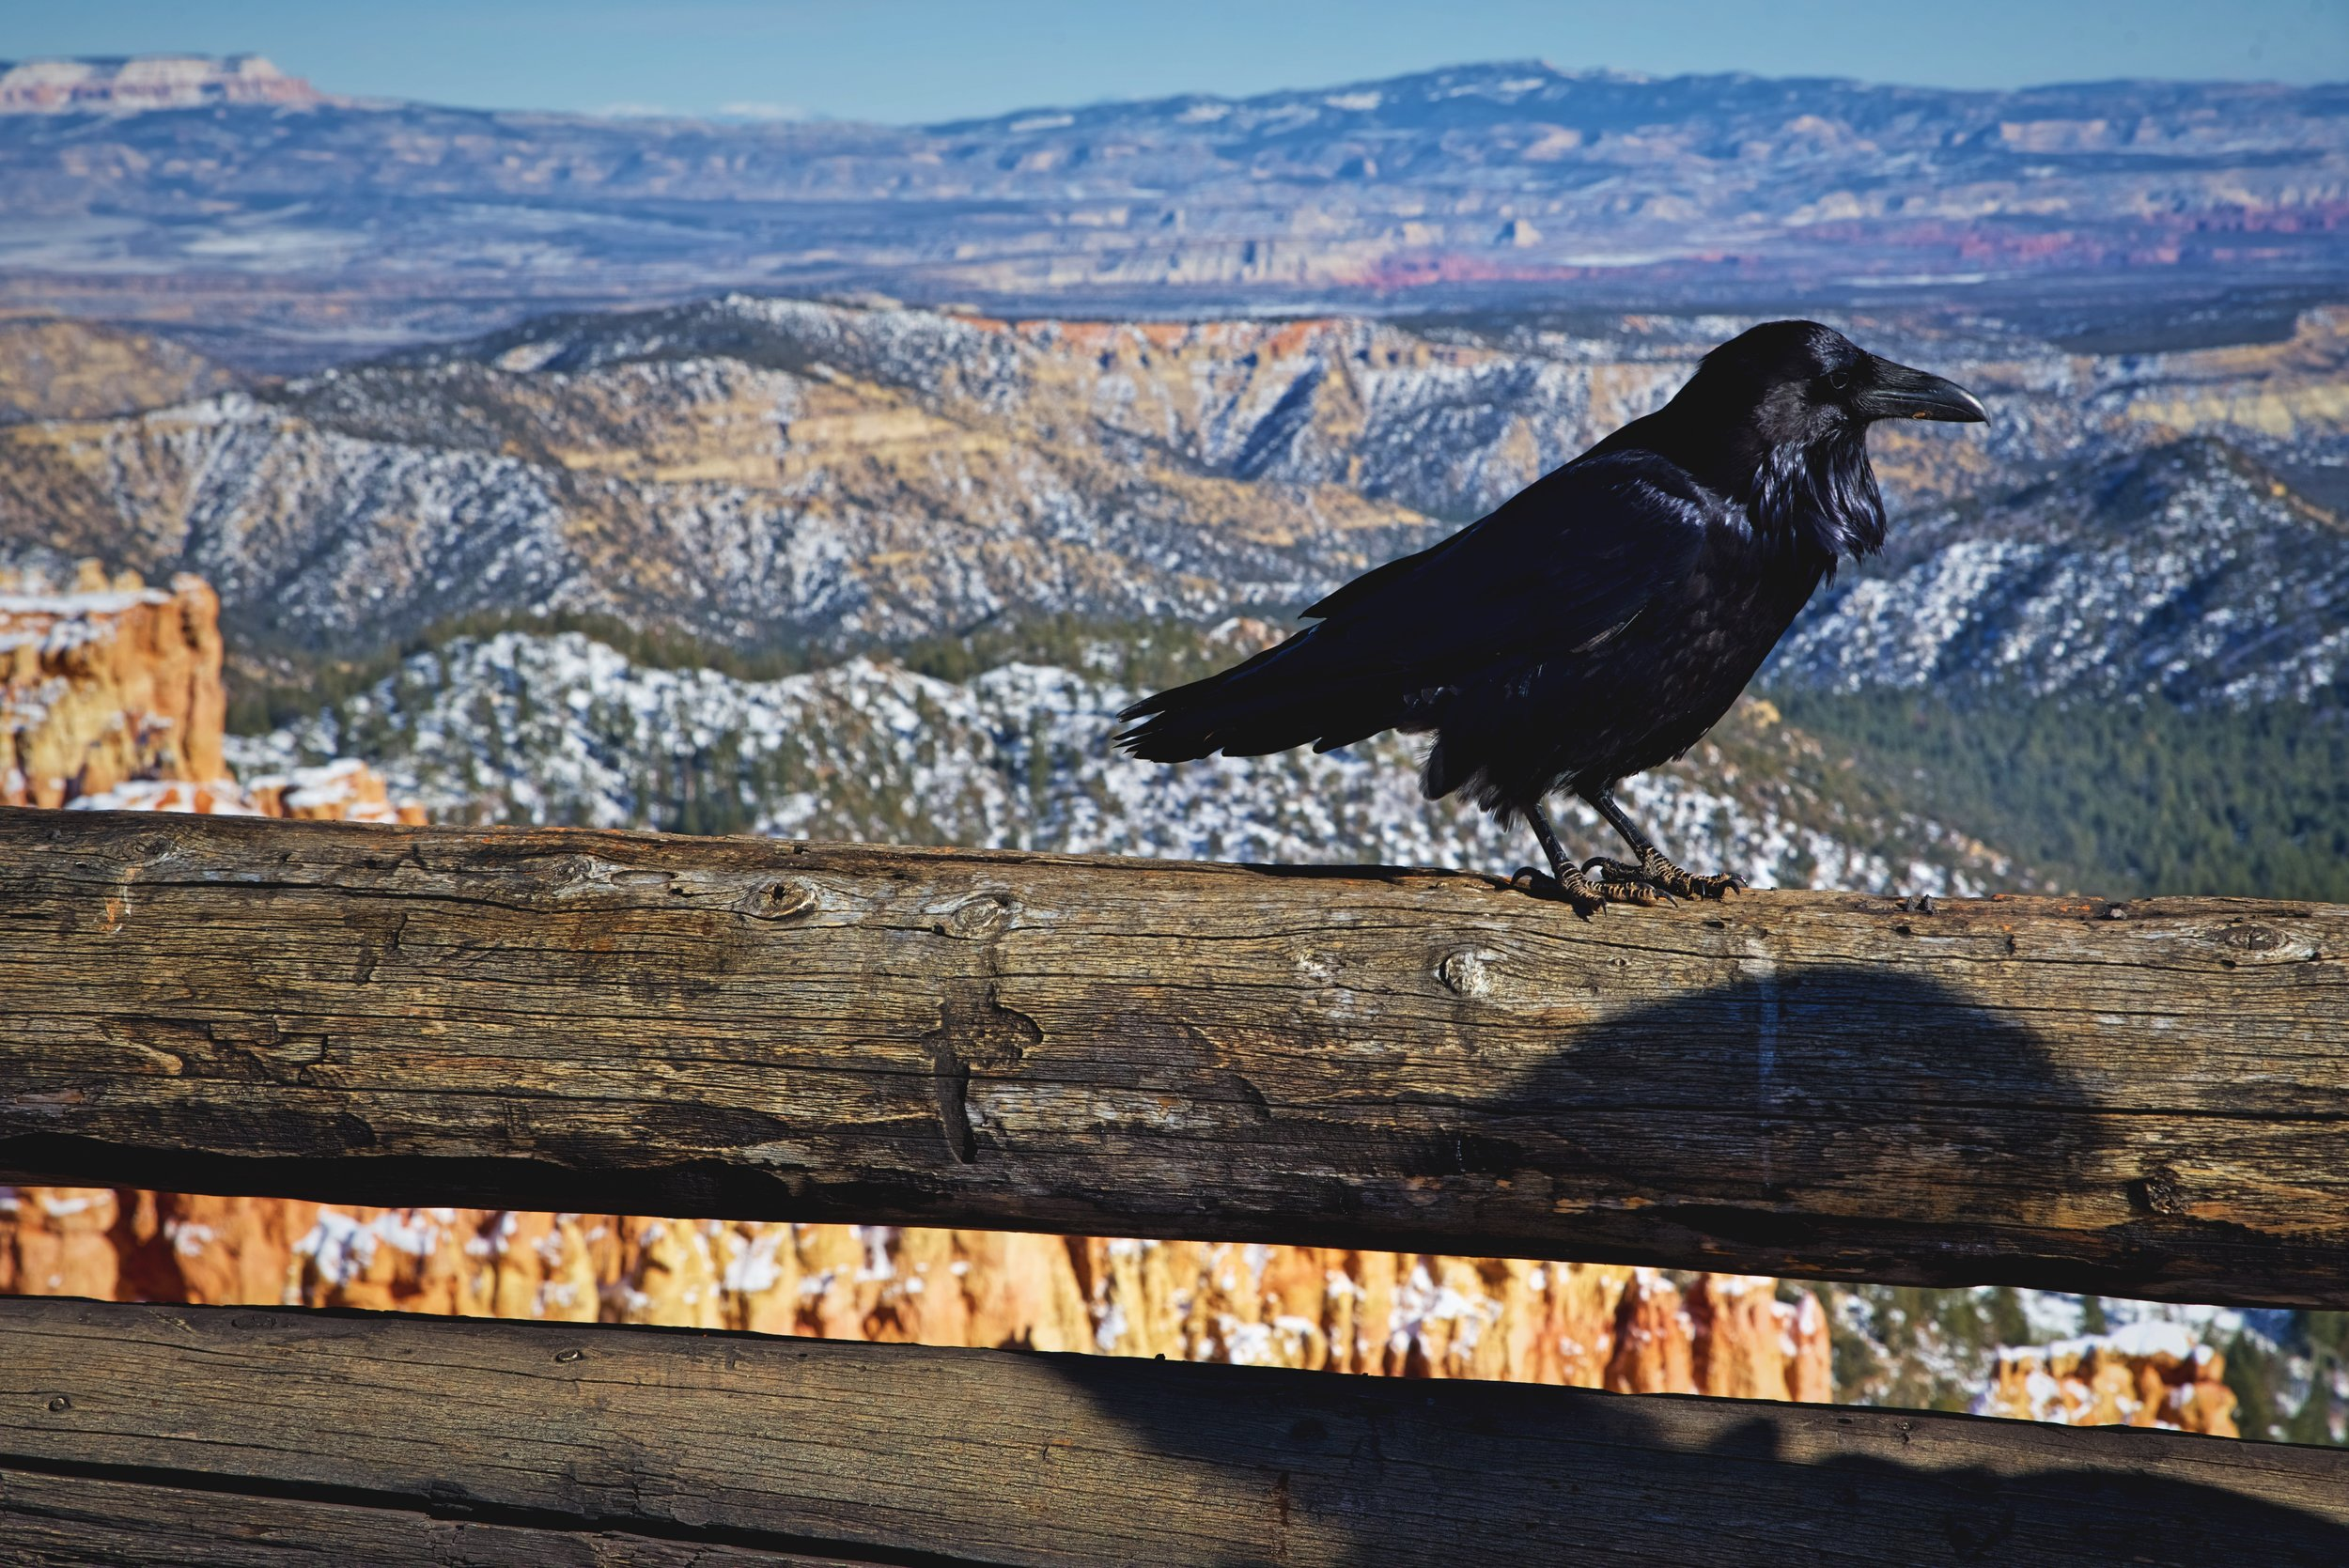 If you get an opportunity to look at a raven's feathers close up, they are a very shiny bluish-black color.